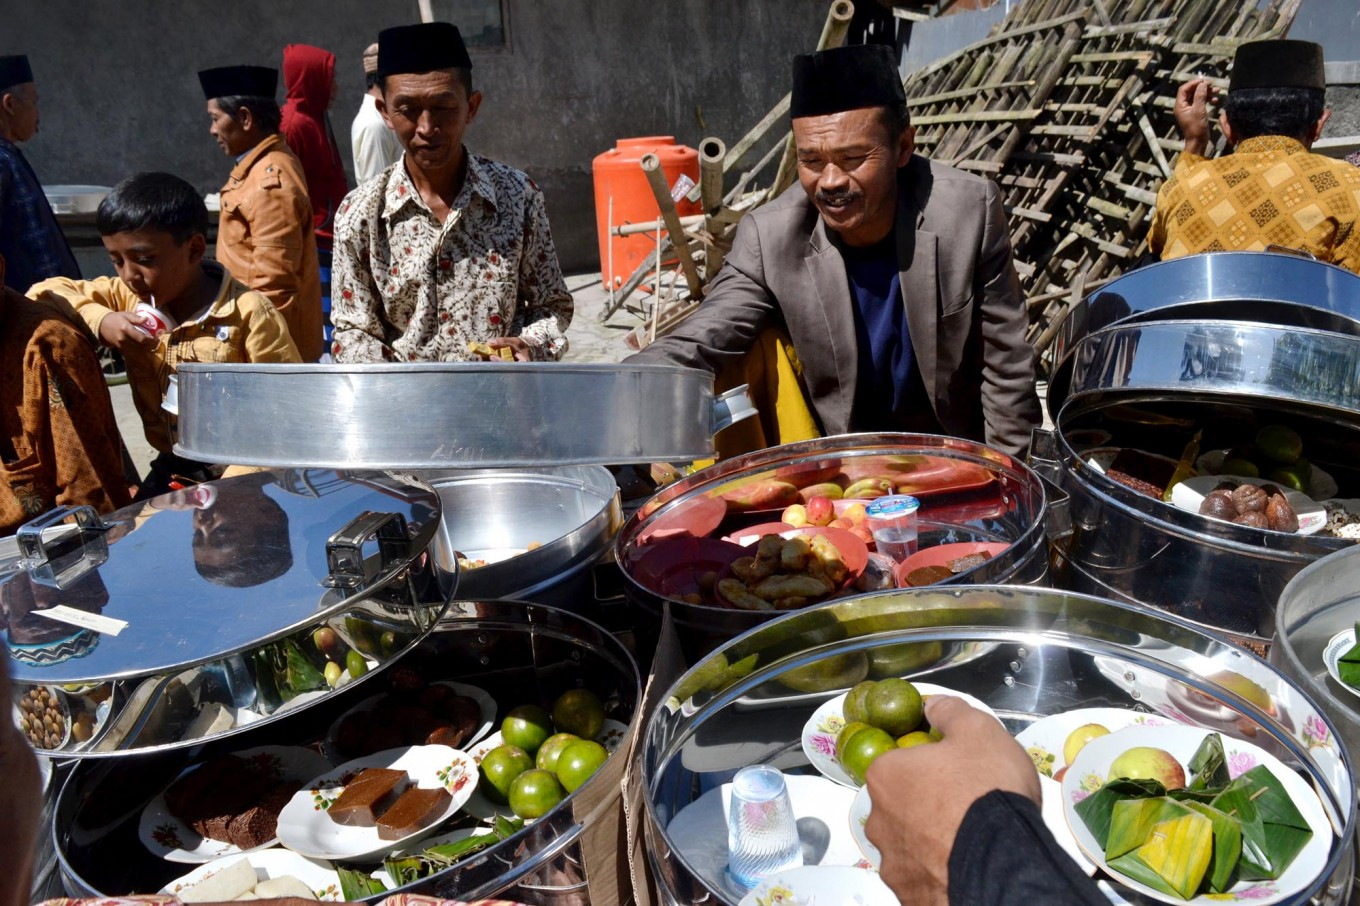 Some villagers share food kept inside tenong (containers made of aluminum or bamboo), which they brought from home during the ceremony. JP/Stefanus Ajie